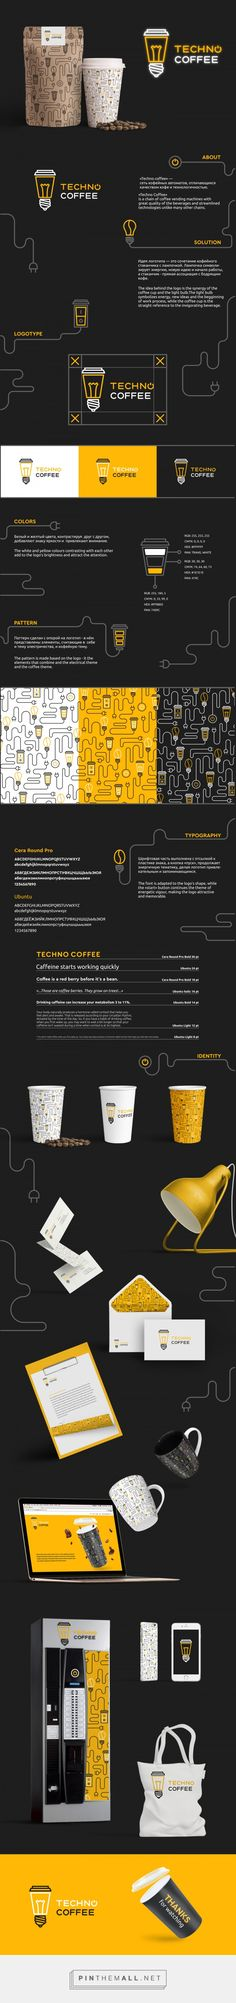 TechnoCoffee Coffee Vending Machine Branding by Logo Machine | Fivestar Branding Agency – Design and Branding Agency & Curated Inspiration Gallery  #coffeebranding #branding #packaging #brand #packagingdesign #design #designinspiration